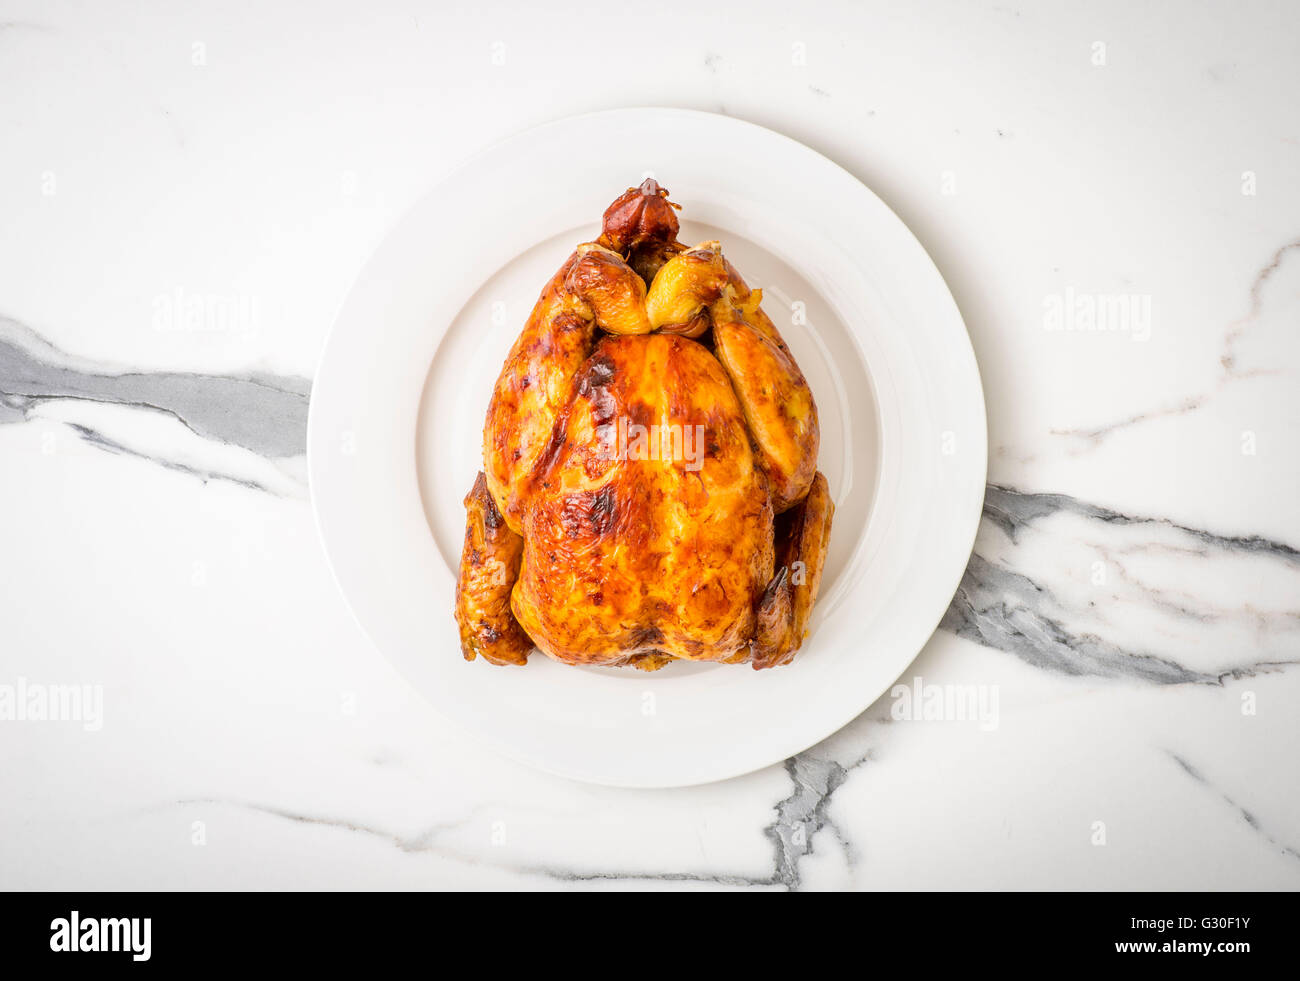 Rotisserie Chicken. Whole roast chicken on white plate seen from above on marble work surface - Stock Image